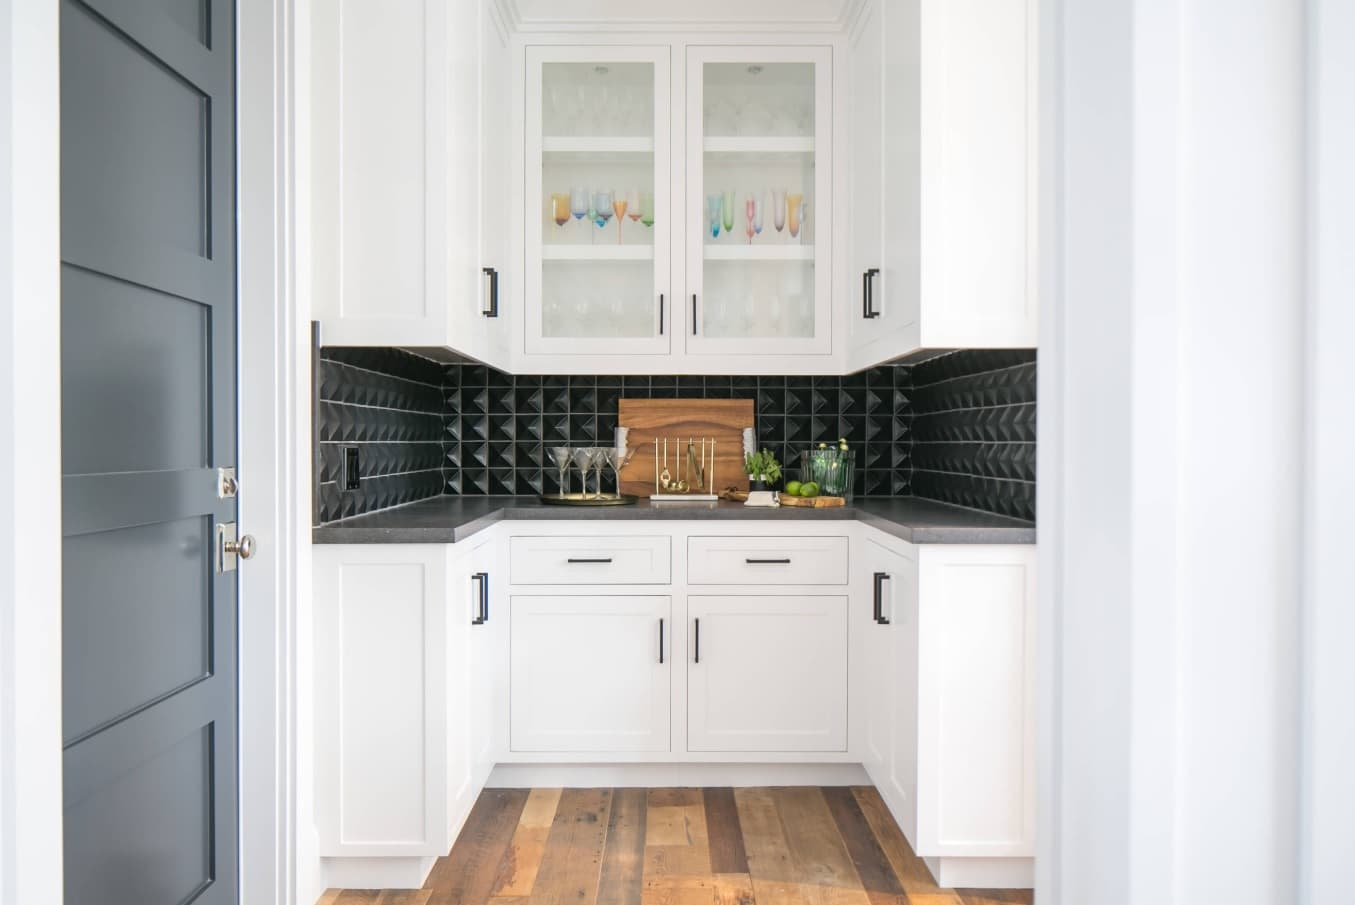 White kitchen furnniture facades and black splashback with voluminous tile